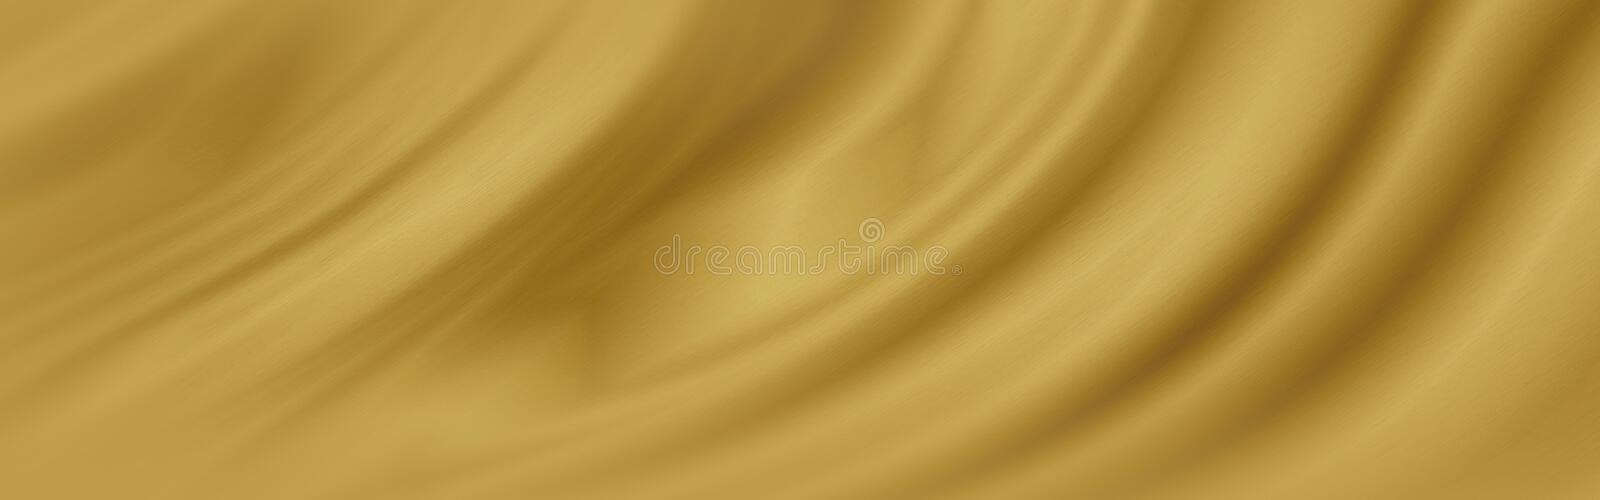 Gold luxury fabric background with copy space royalty free stock photos